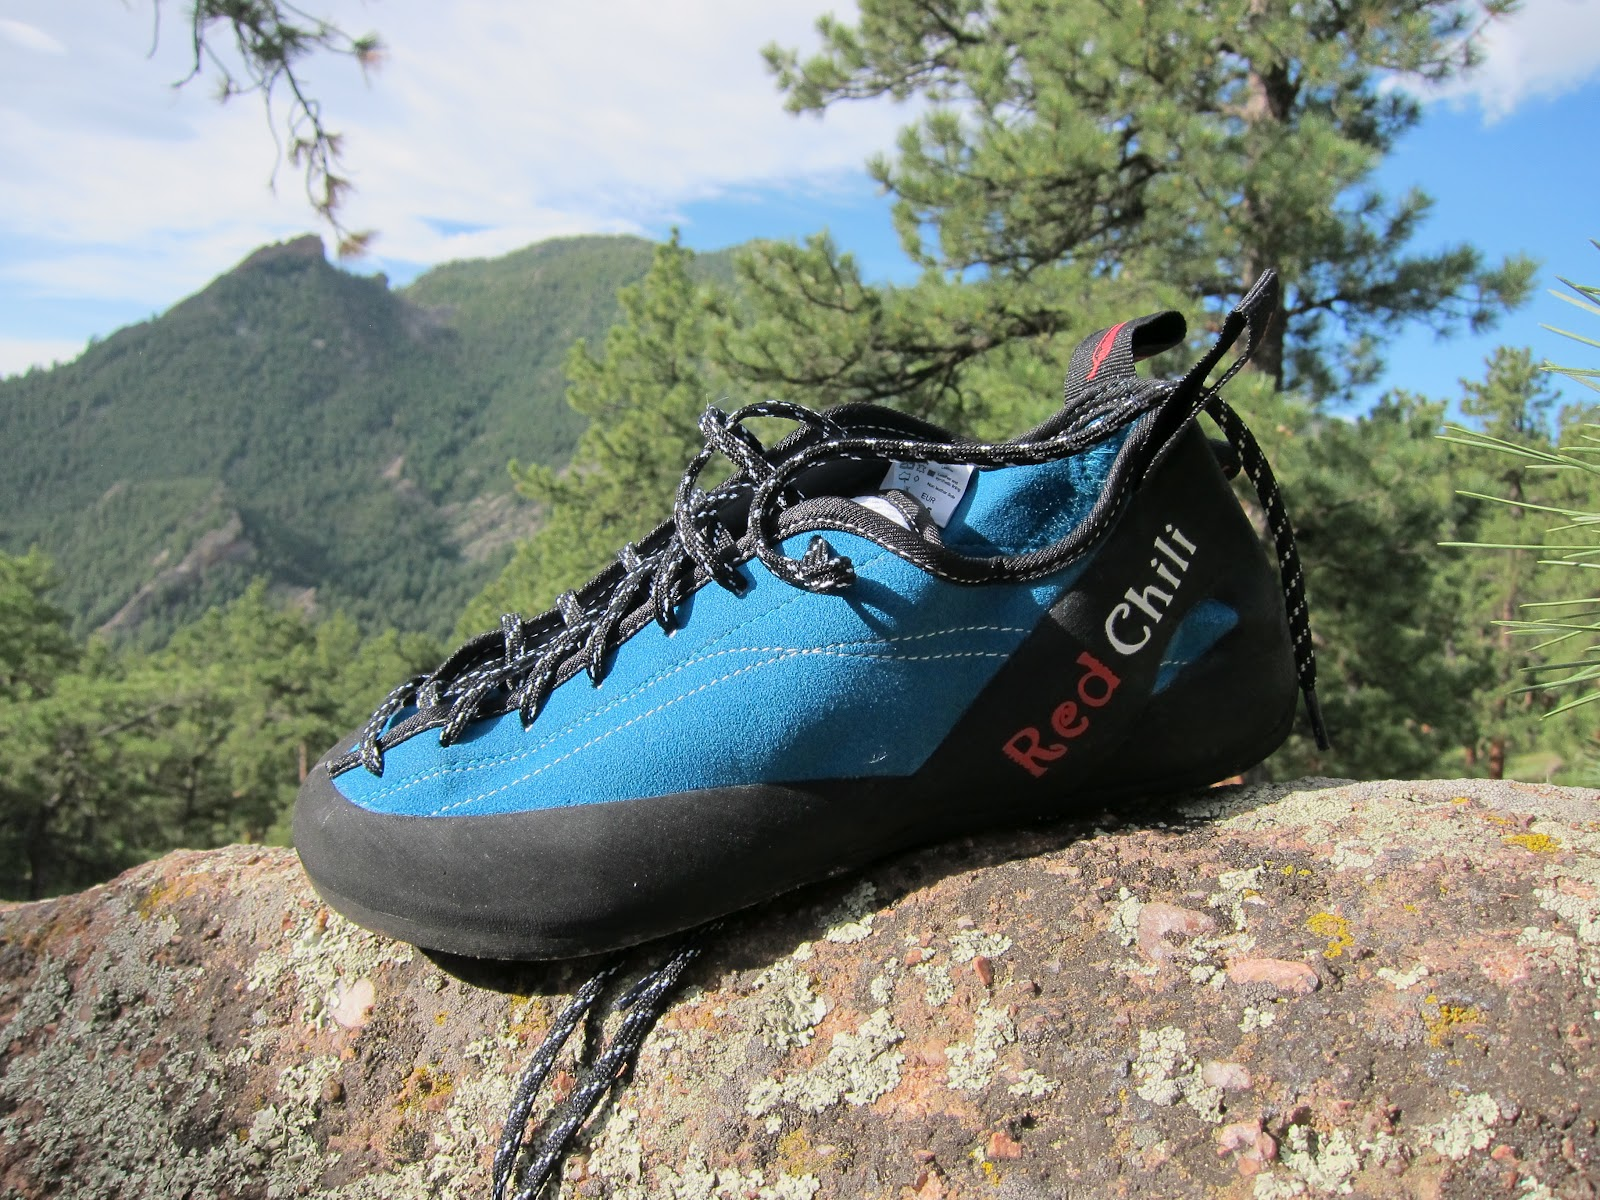 review red chili durango climbing shoes robonza. Black Bedroom Furniture Sets. Home Design Ideas